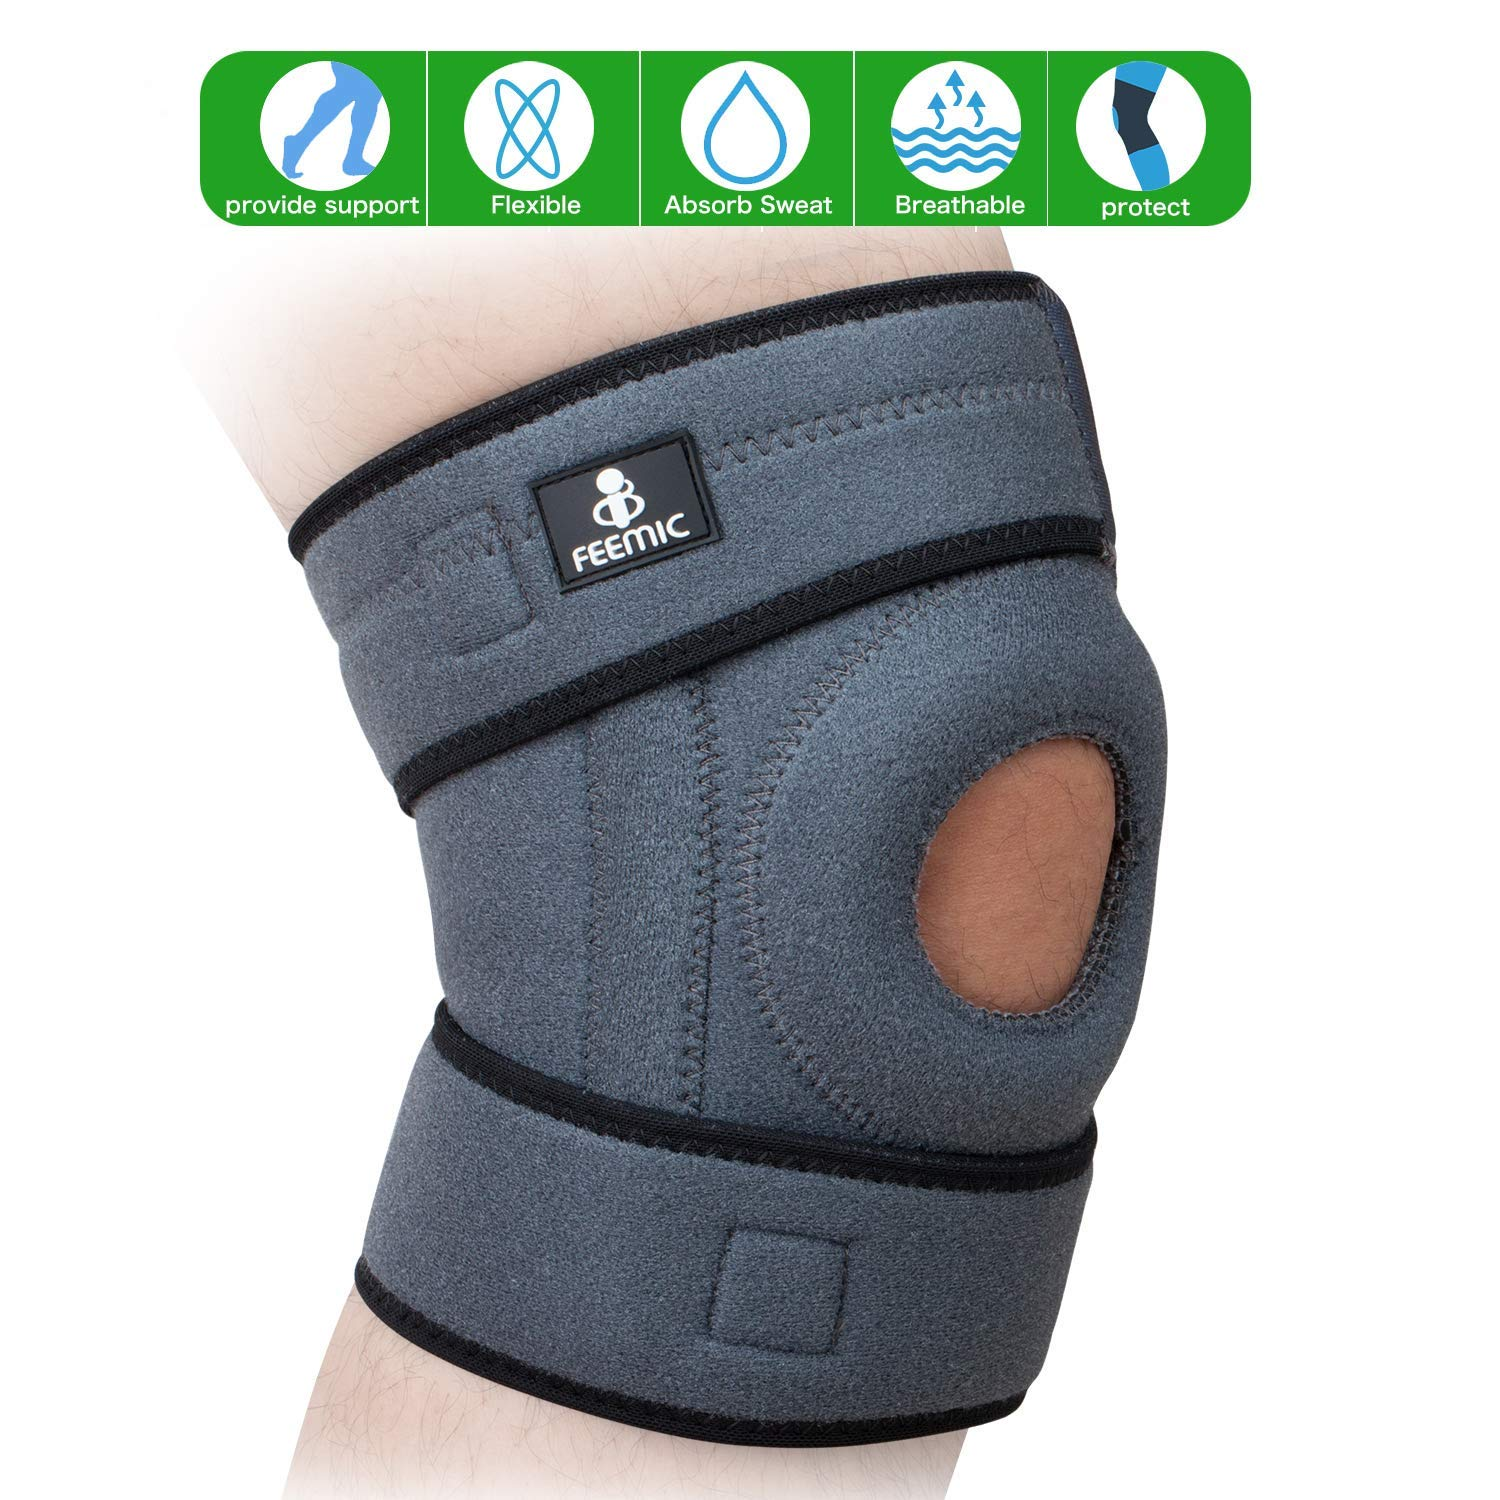 6582a1cf81 Get Quotations · BSUEA Knee Brace Support with Adjustable Strapping  Non-Slip Breathable Sleeve. Meniscus Tear Support